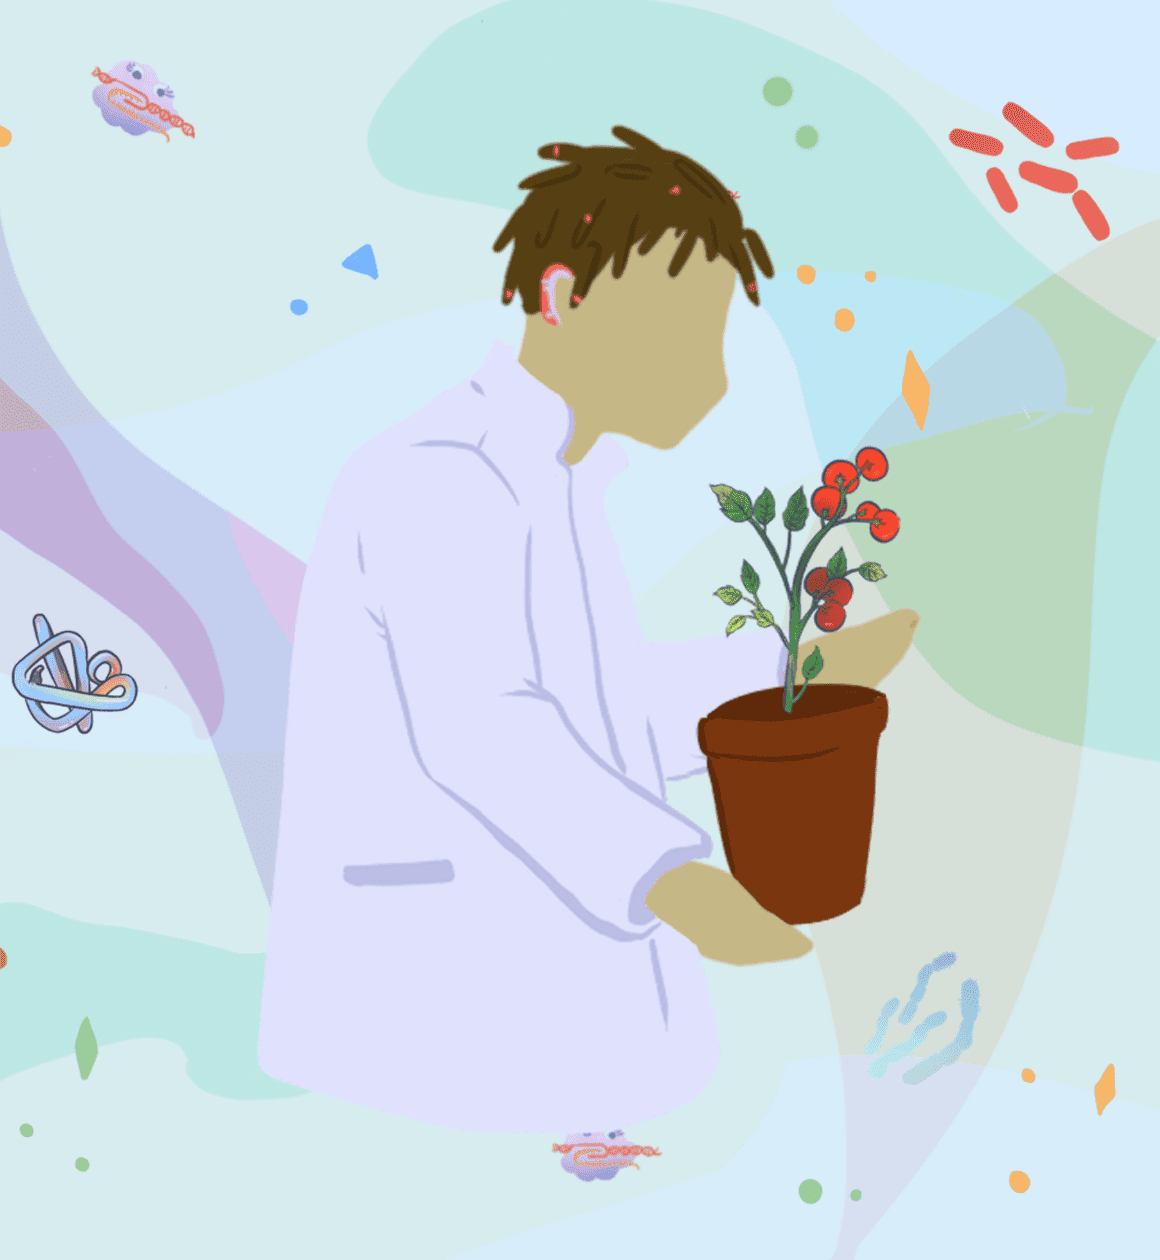 Illustration of a biology student holding a tomato plant